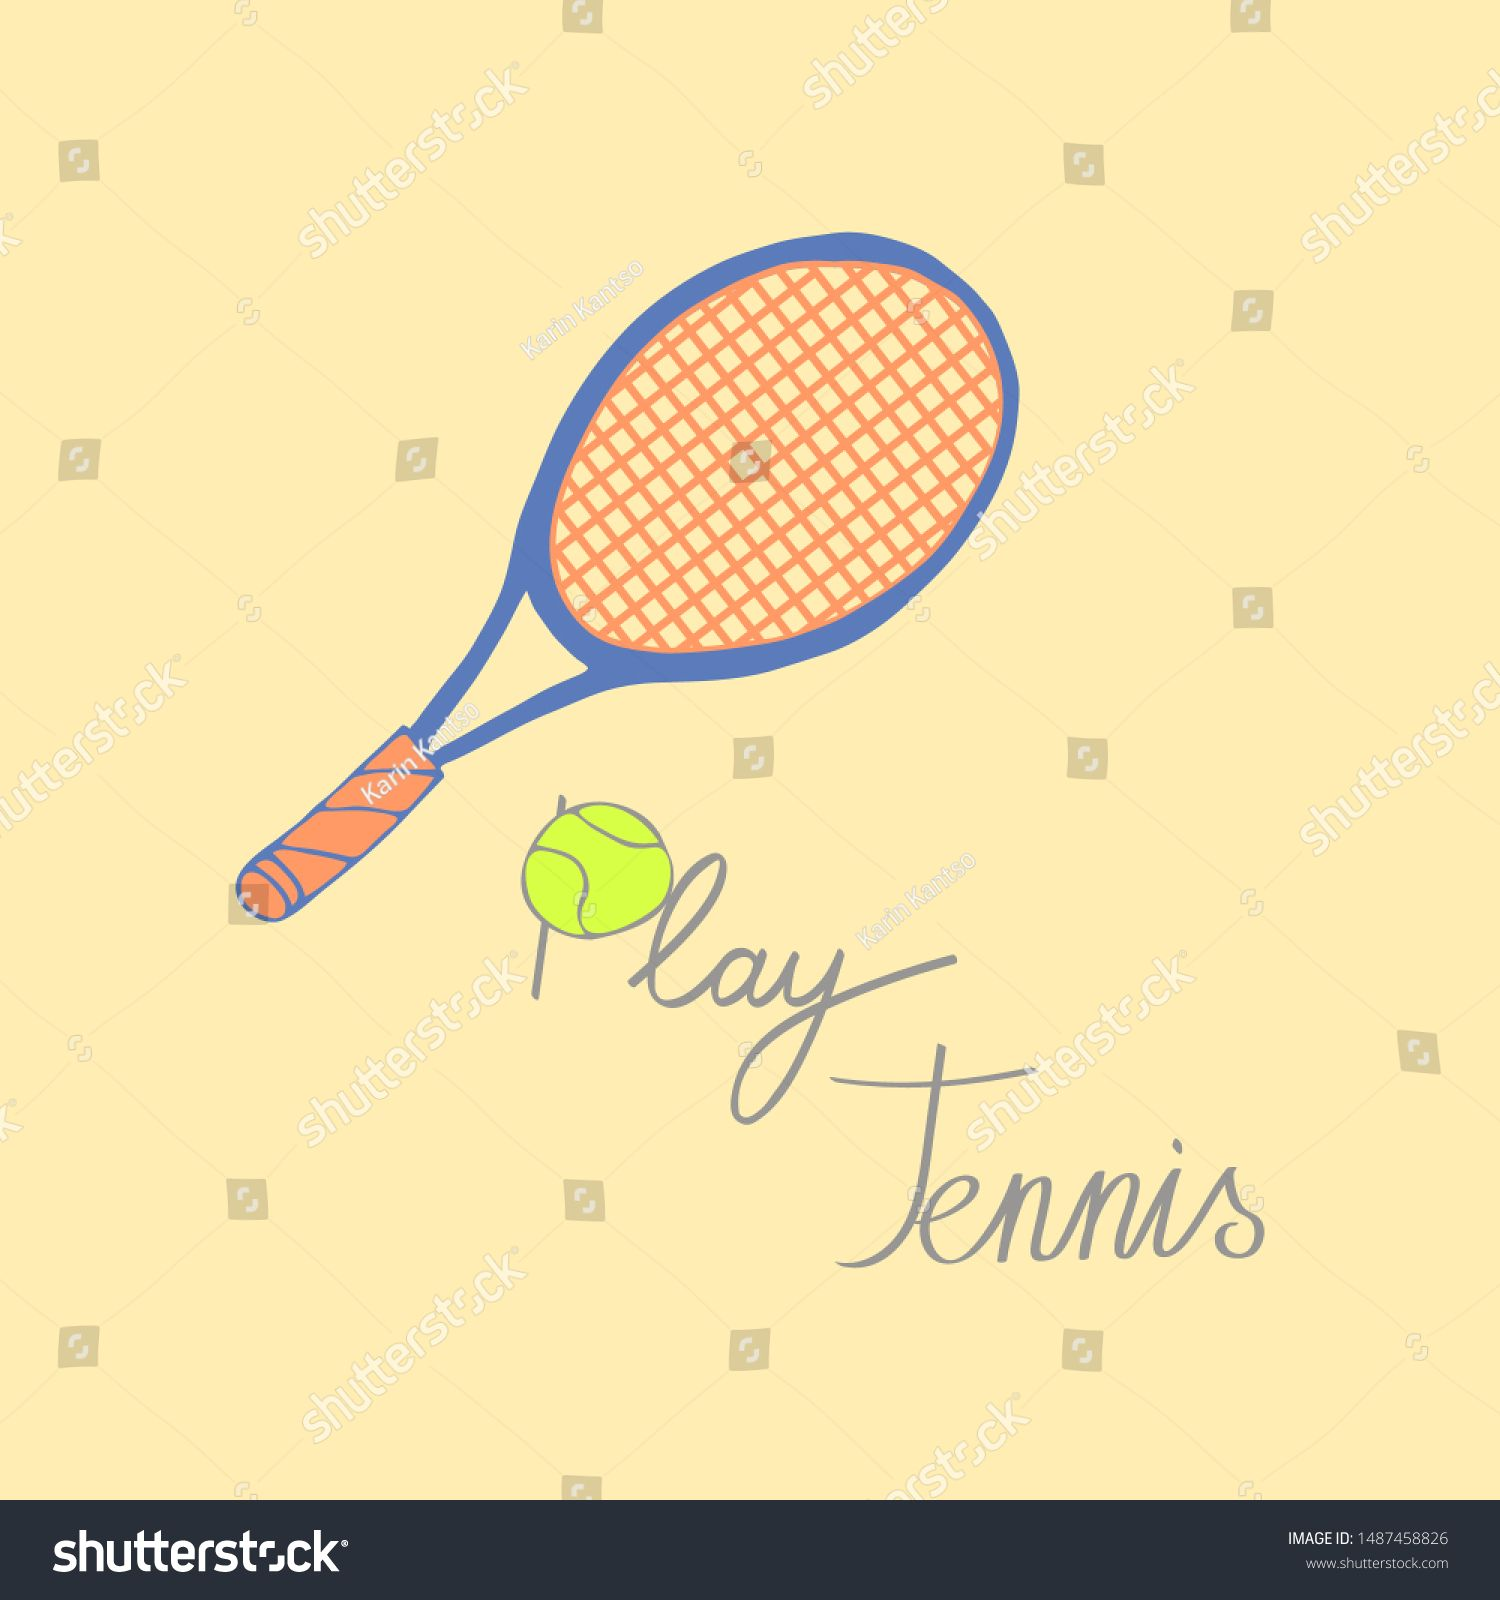 Tennis Cartoon Hand Draw Illustration With Lettering Tennis Racket Ball And Motivational Inscription Sponsored Canvas Texture Painted Paper Paper Texture